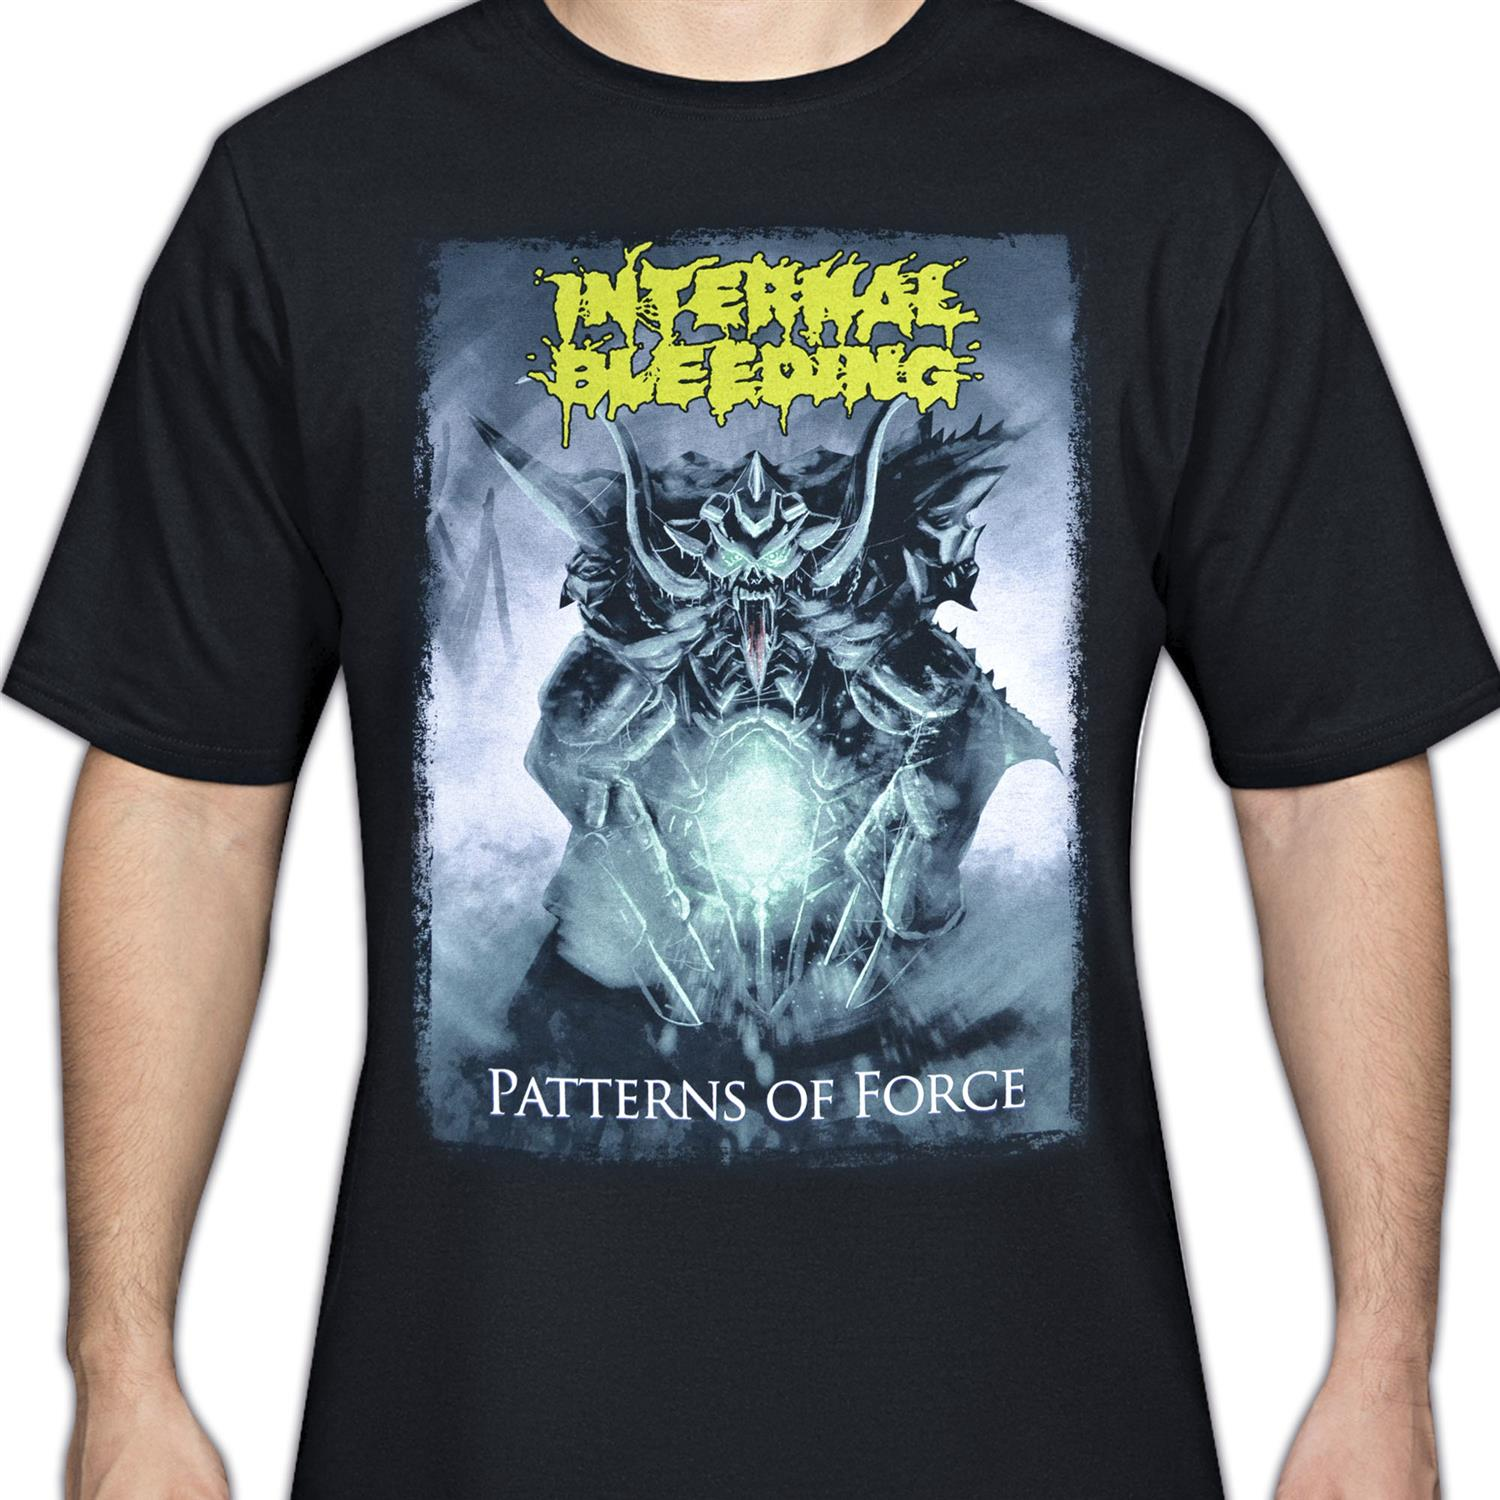 Patterns Of Force (Import)